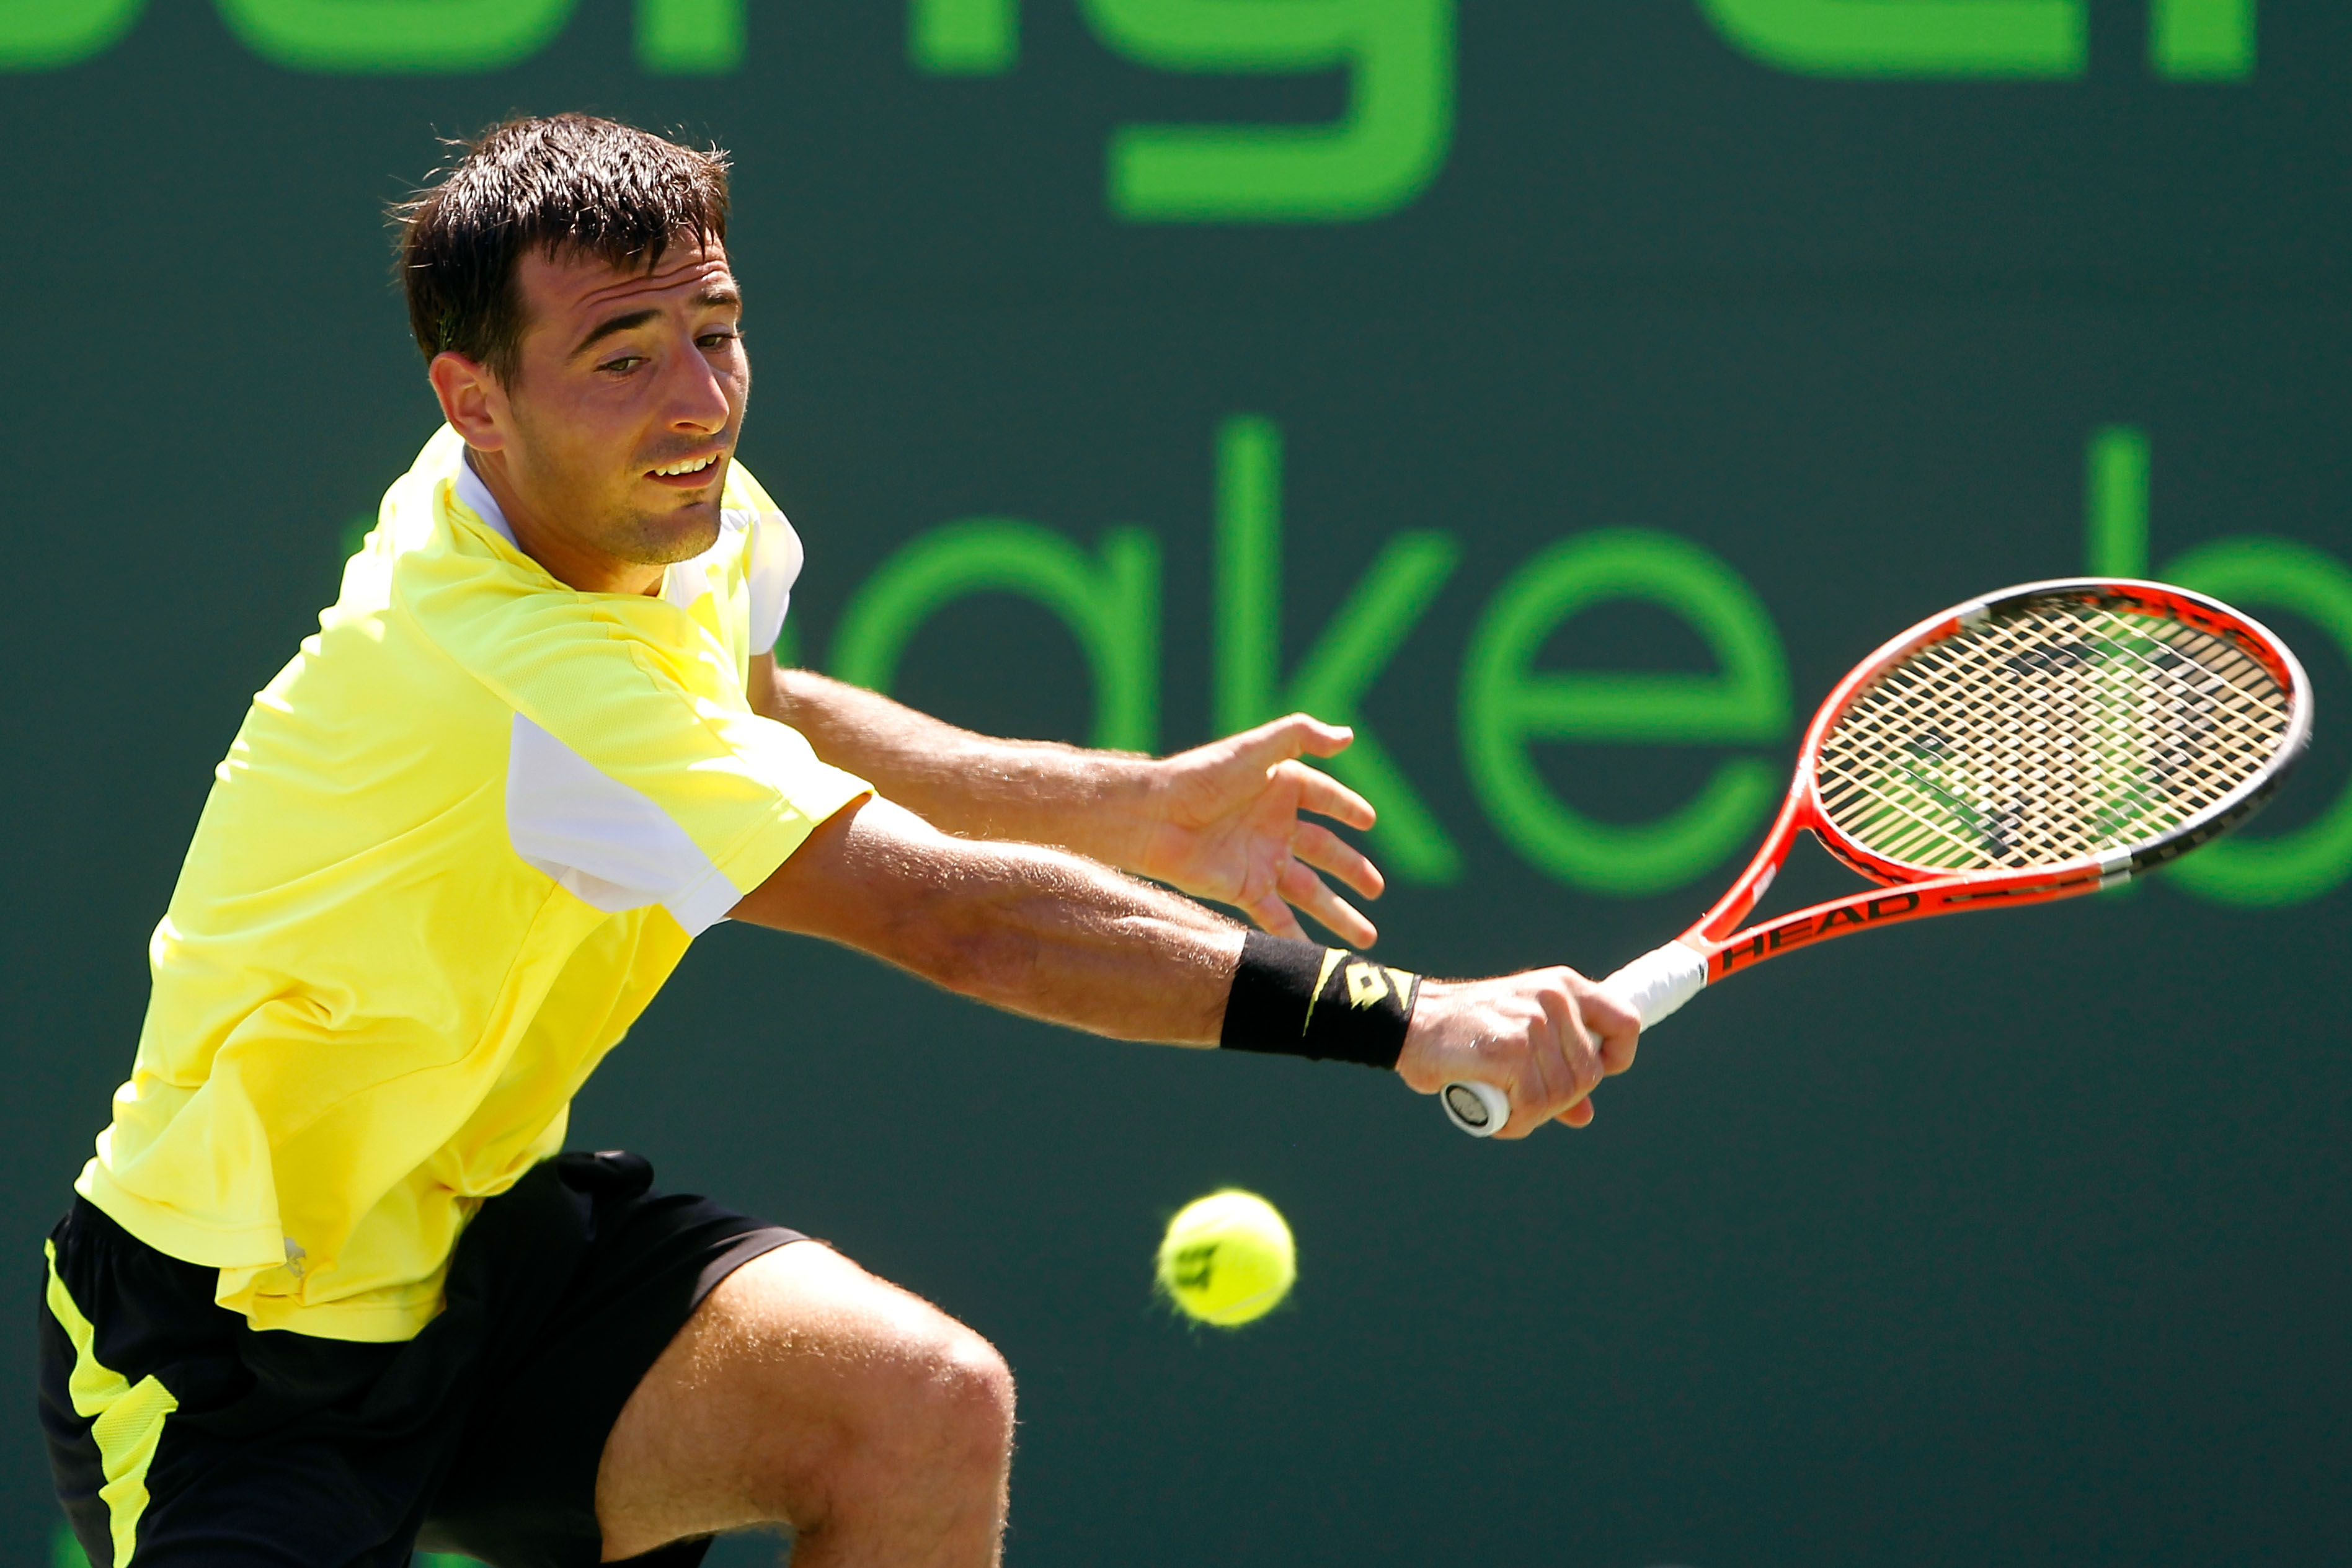 KEY BISCAYNE, FL - MARCH 25:  Ivan Dodig of Crotia hits a return against Robin Soderling of Sweden during the Sony Ericsson Open at Crandon Park Tennis Center on March 25, 2011 in Key Biscayne, Florida.  (Photo by Matthew Stockman/Getty Images)